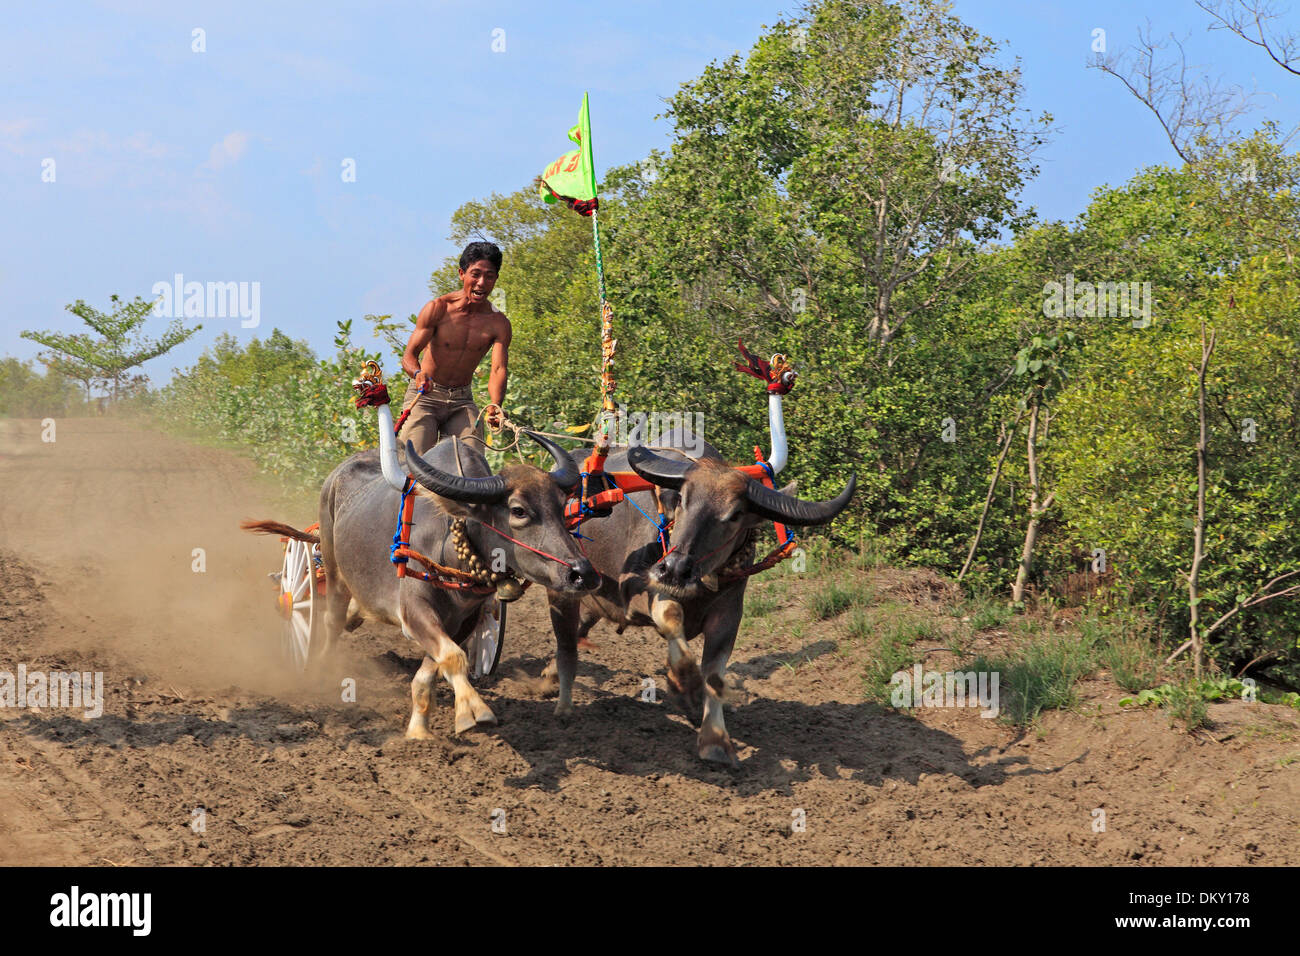 traditional-racing-of-bull-water-buffalo-negara-west-bali-indonesia-DKY178.jpg